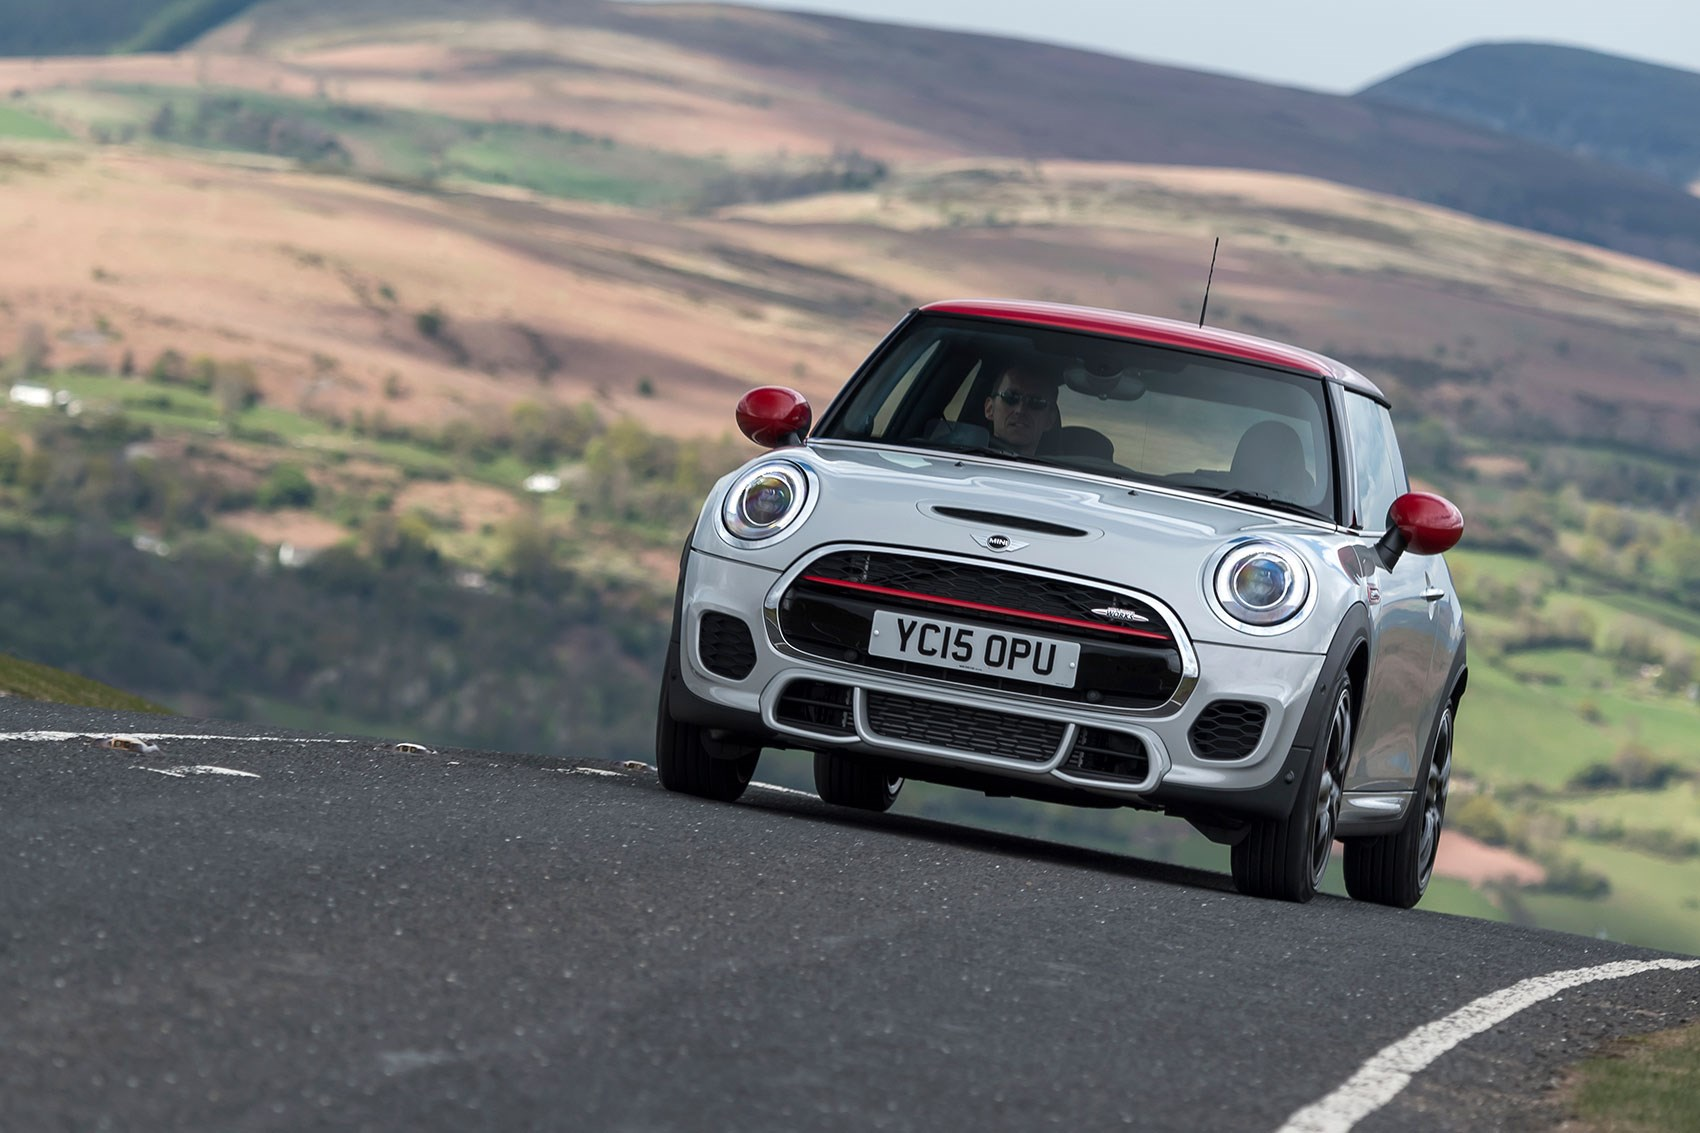 Mini Cooper Lease Deals >> Mini John Cooper Works Steptronic auto (2015) review by ...